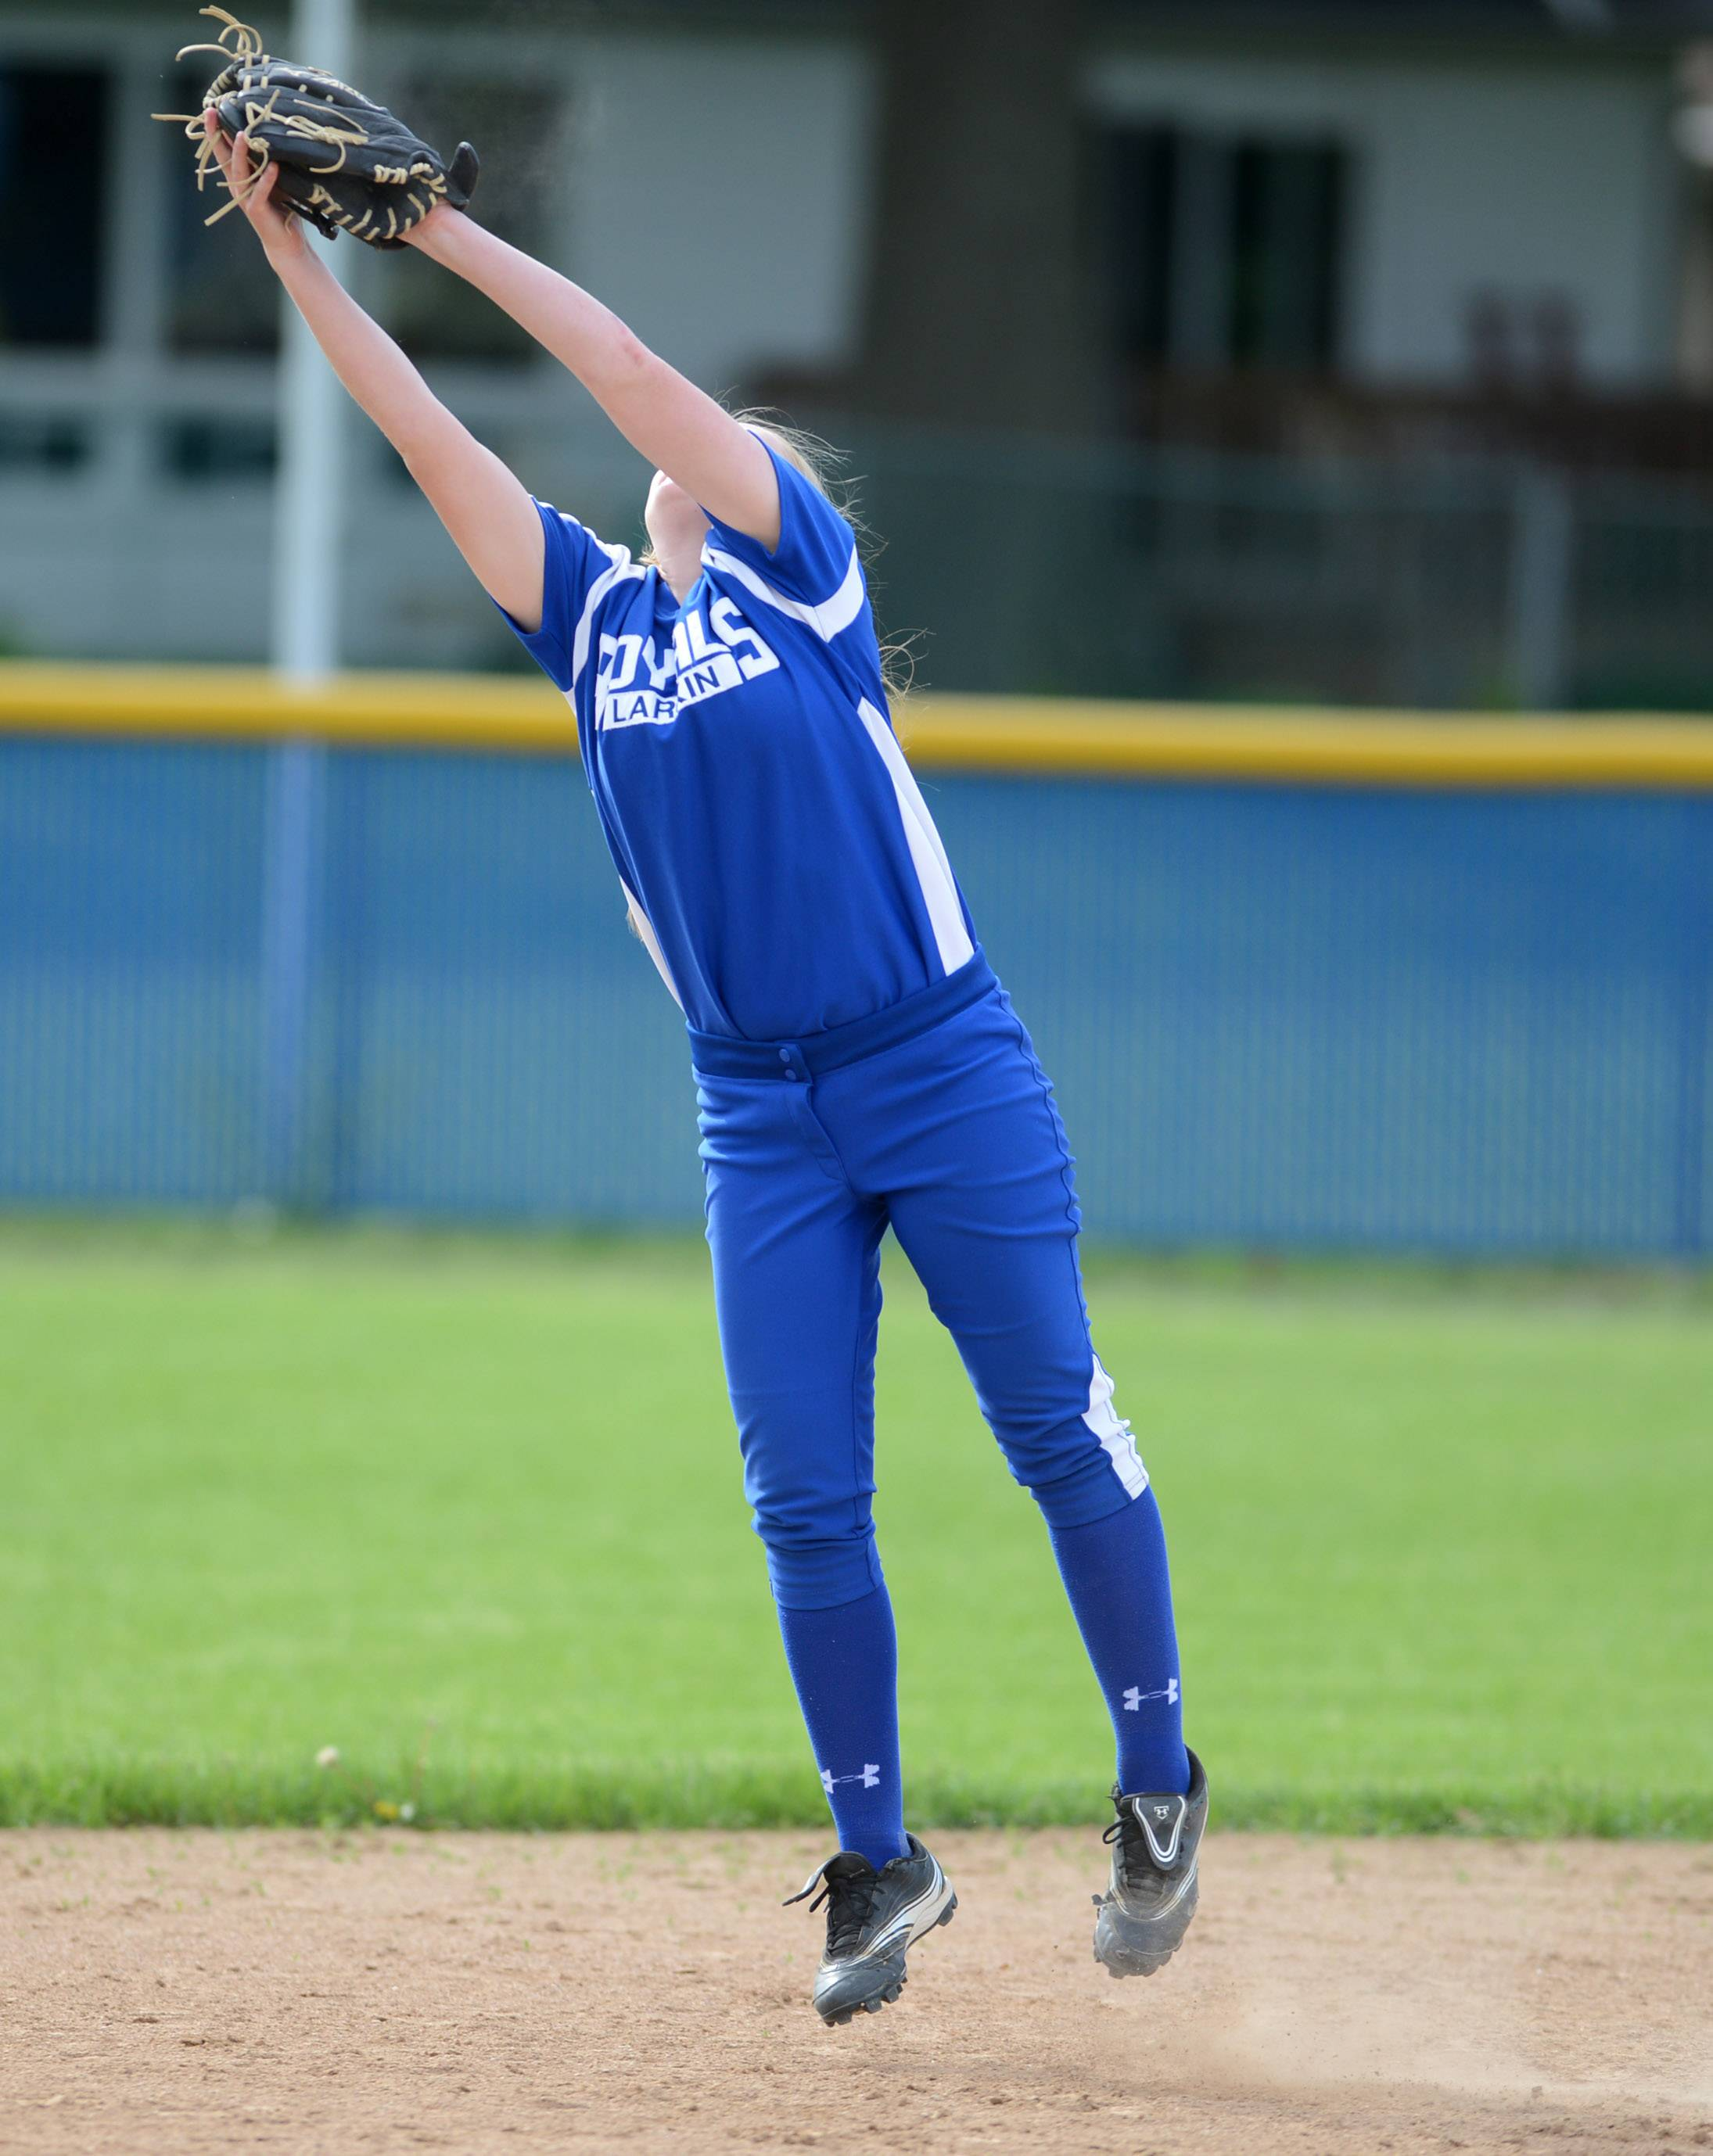 Larkin's Alexandria Bednarski (11) makes a leaping grab of a line drive during Thursday's game at Larkin in Elgin.